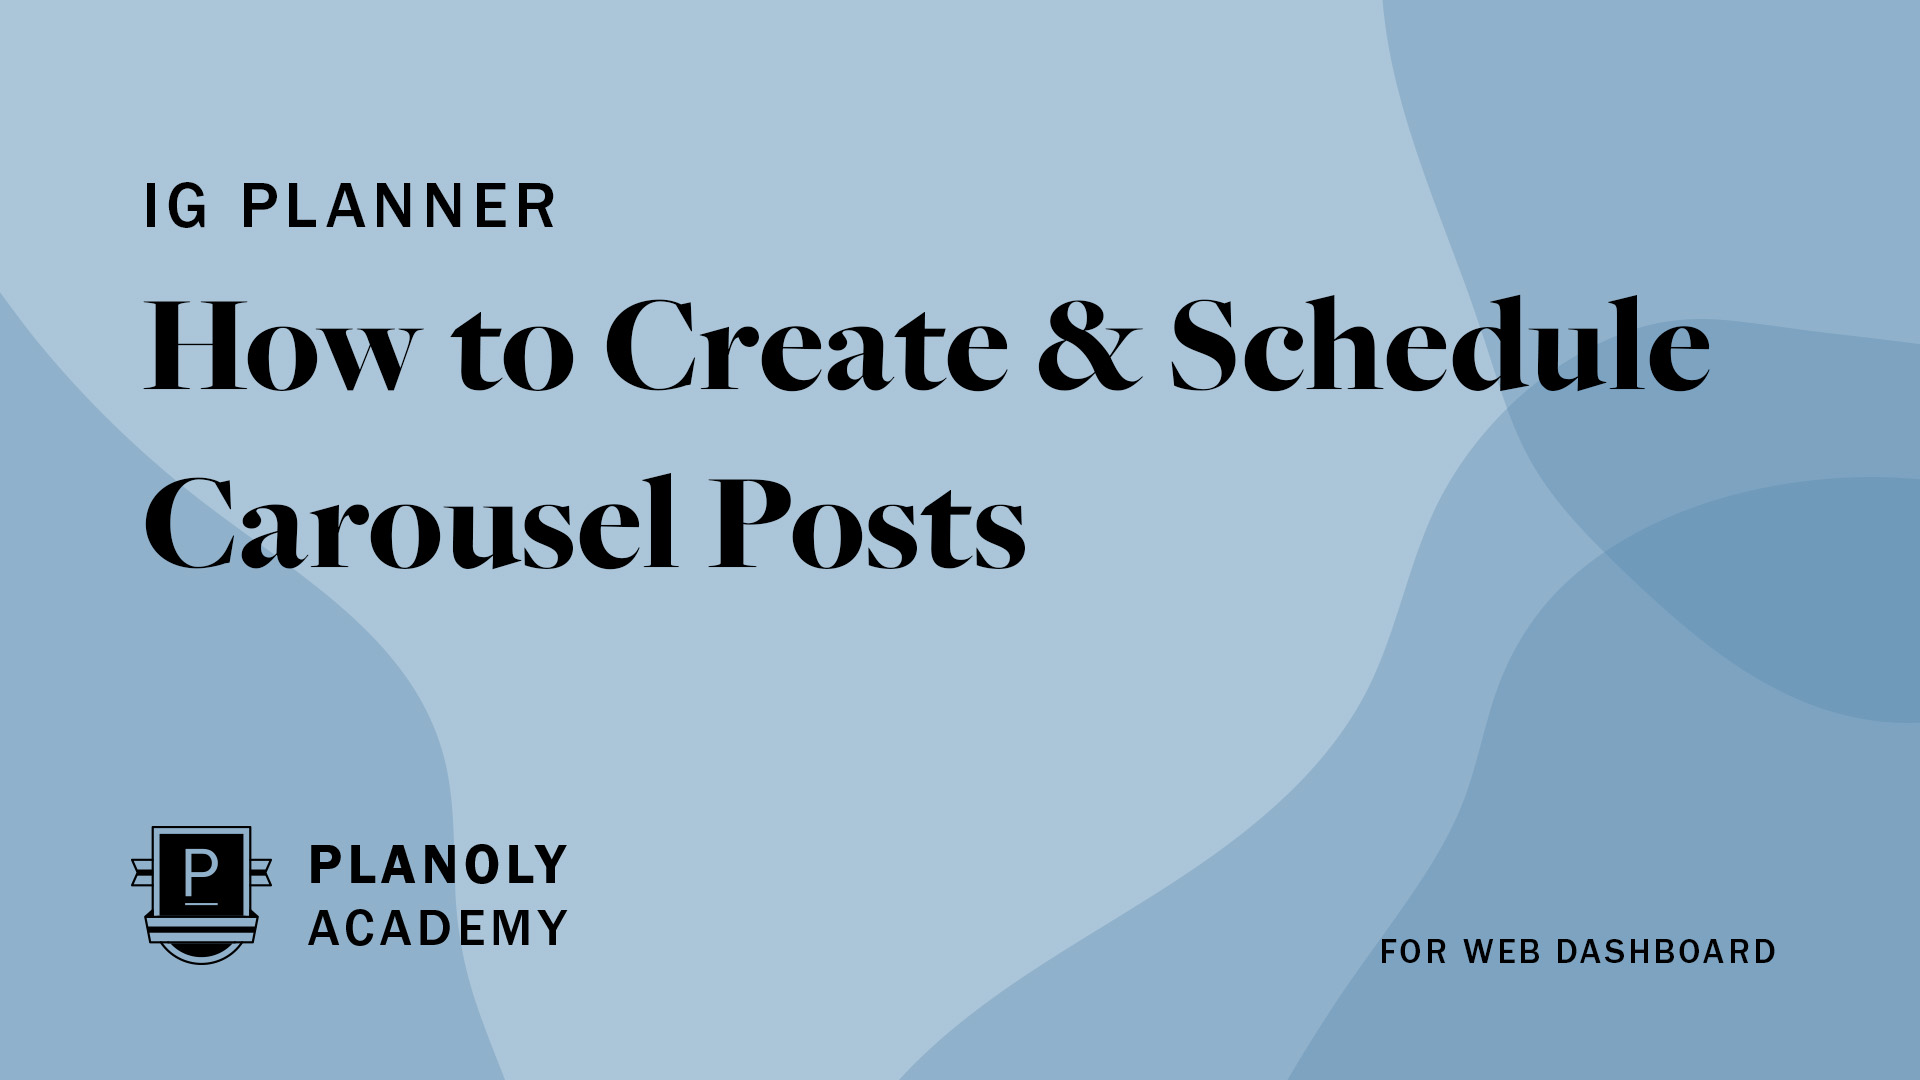 How to Create & Schedule Carousel Posts